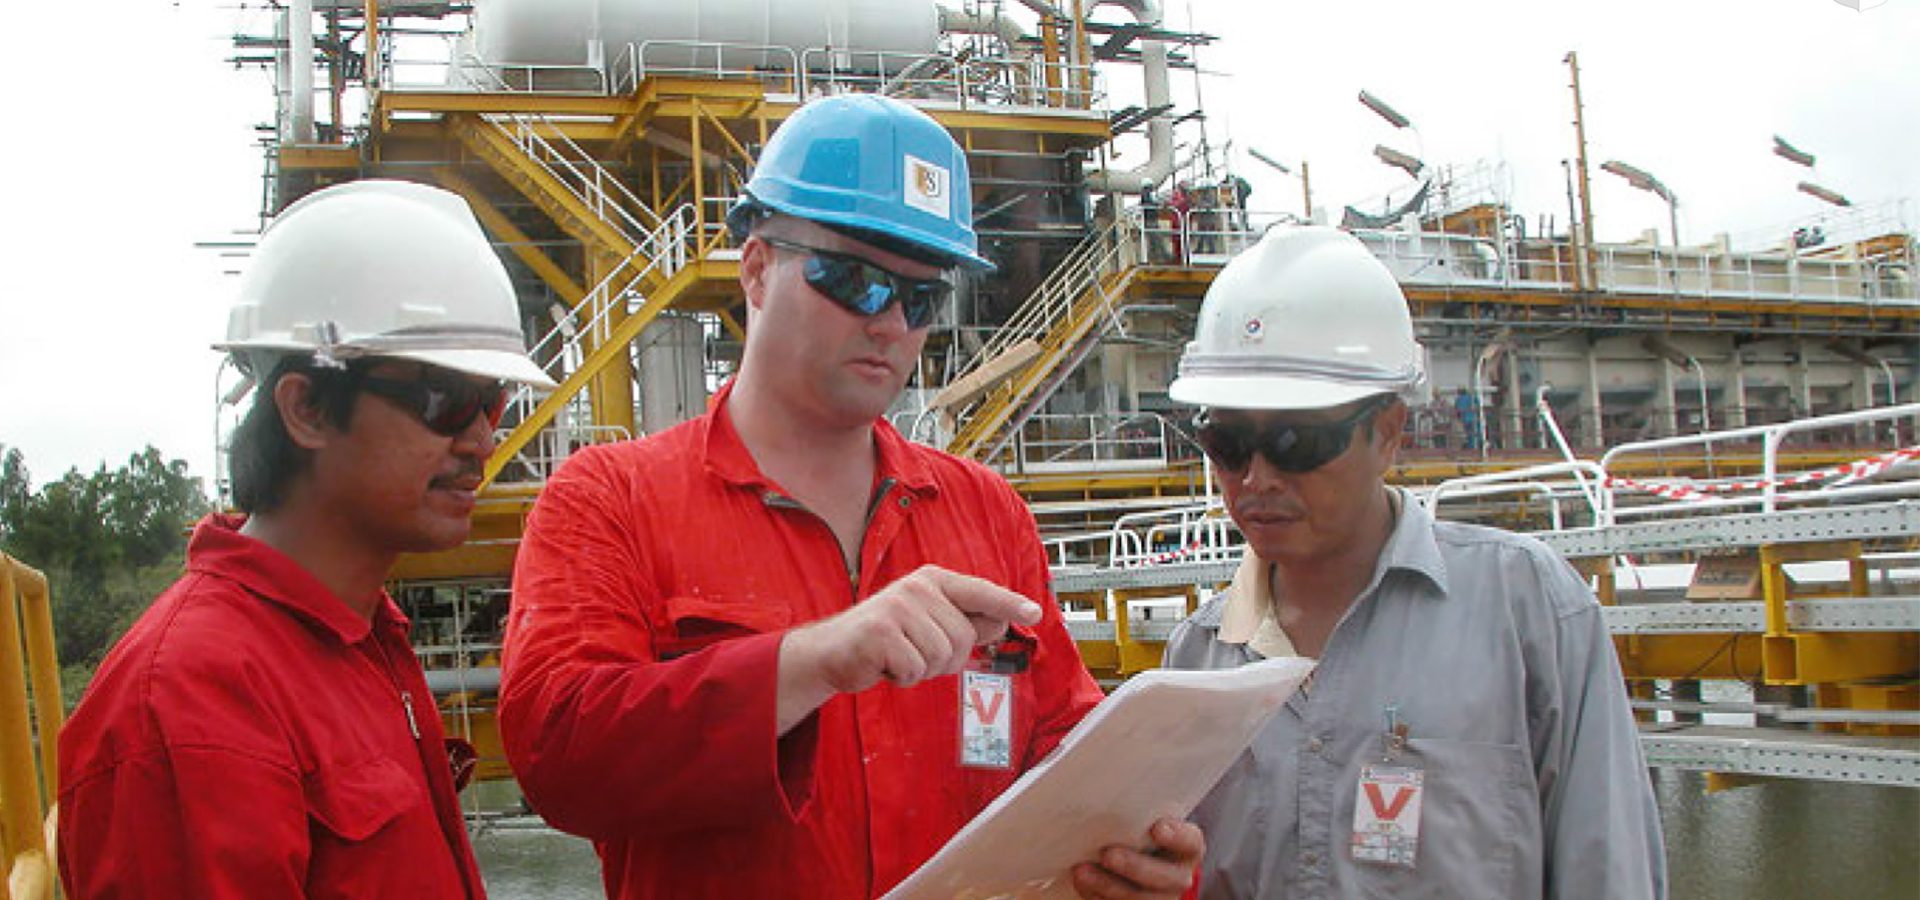 Fire-Securiity-oil-rig-cable-Inspection